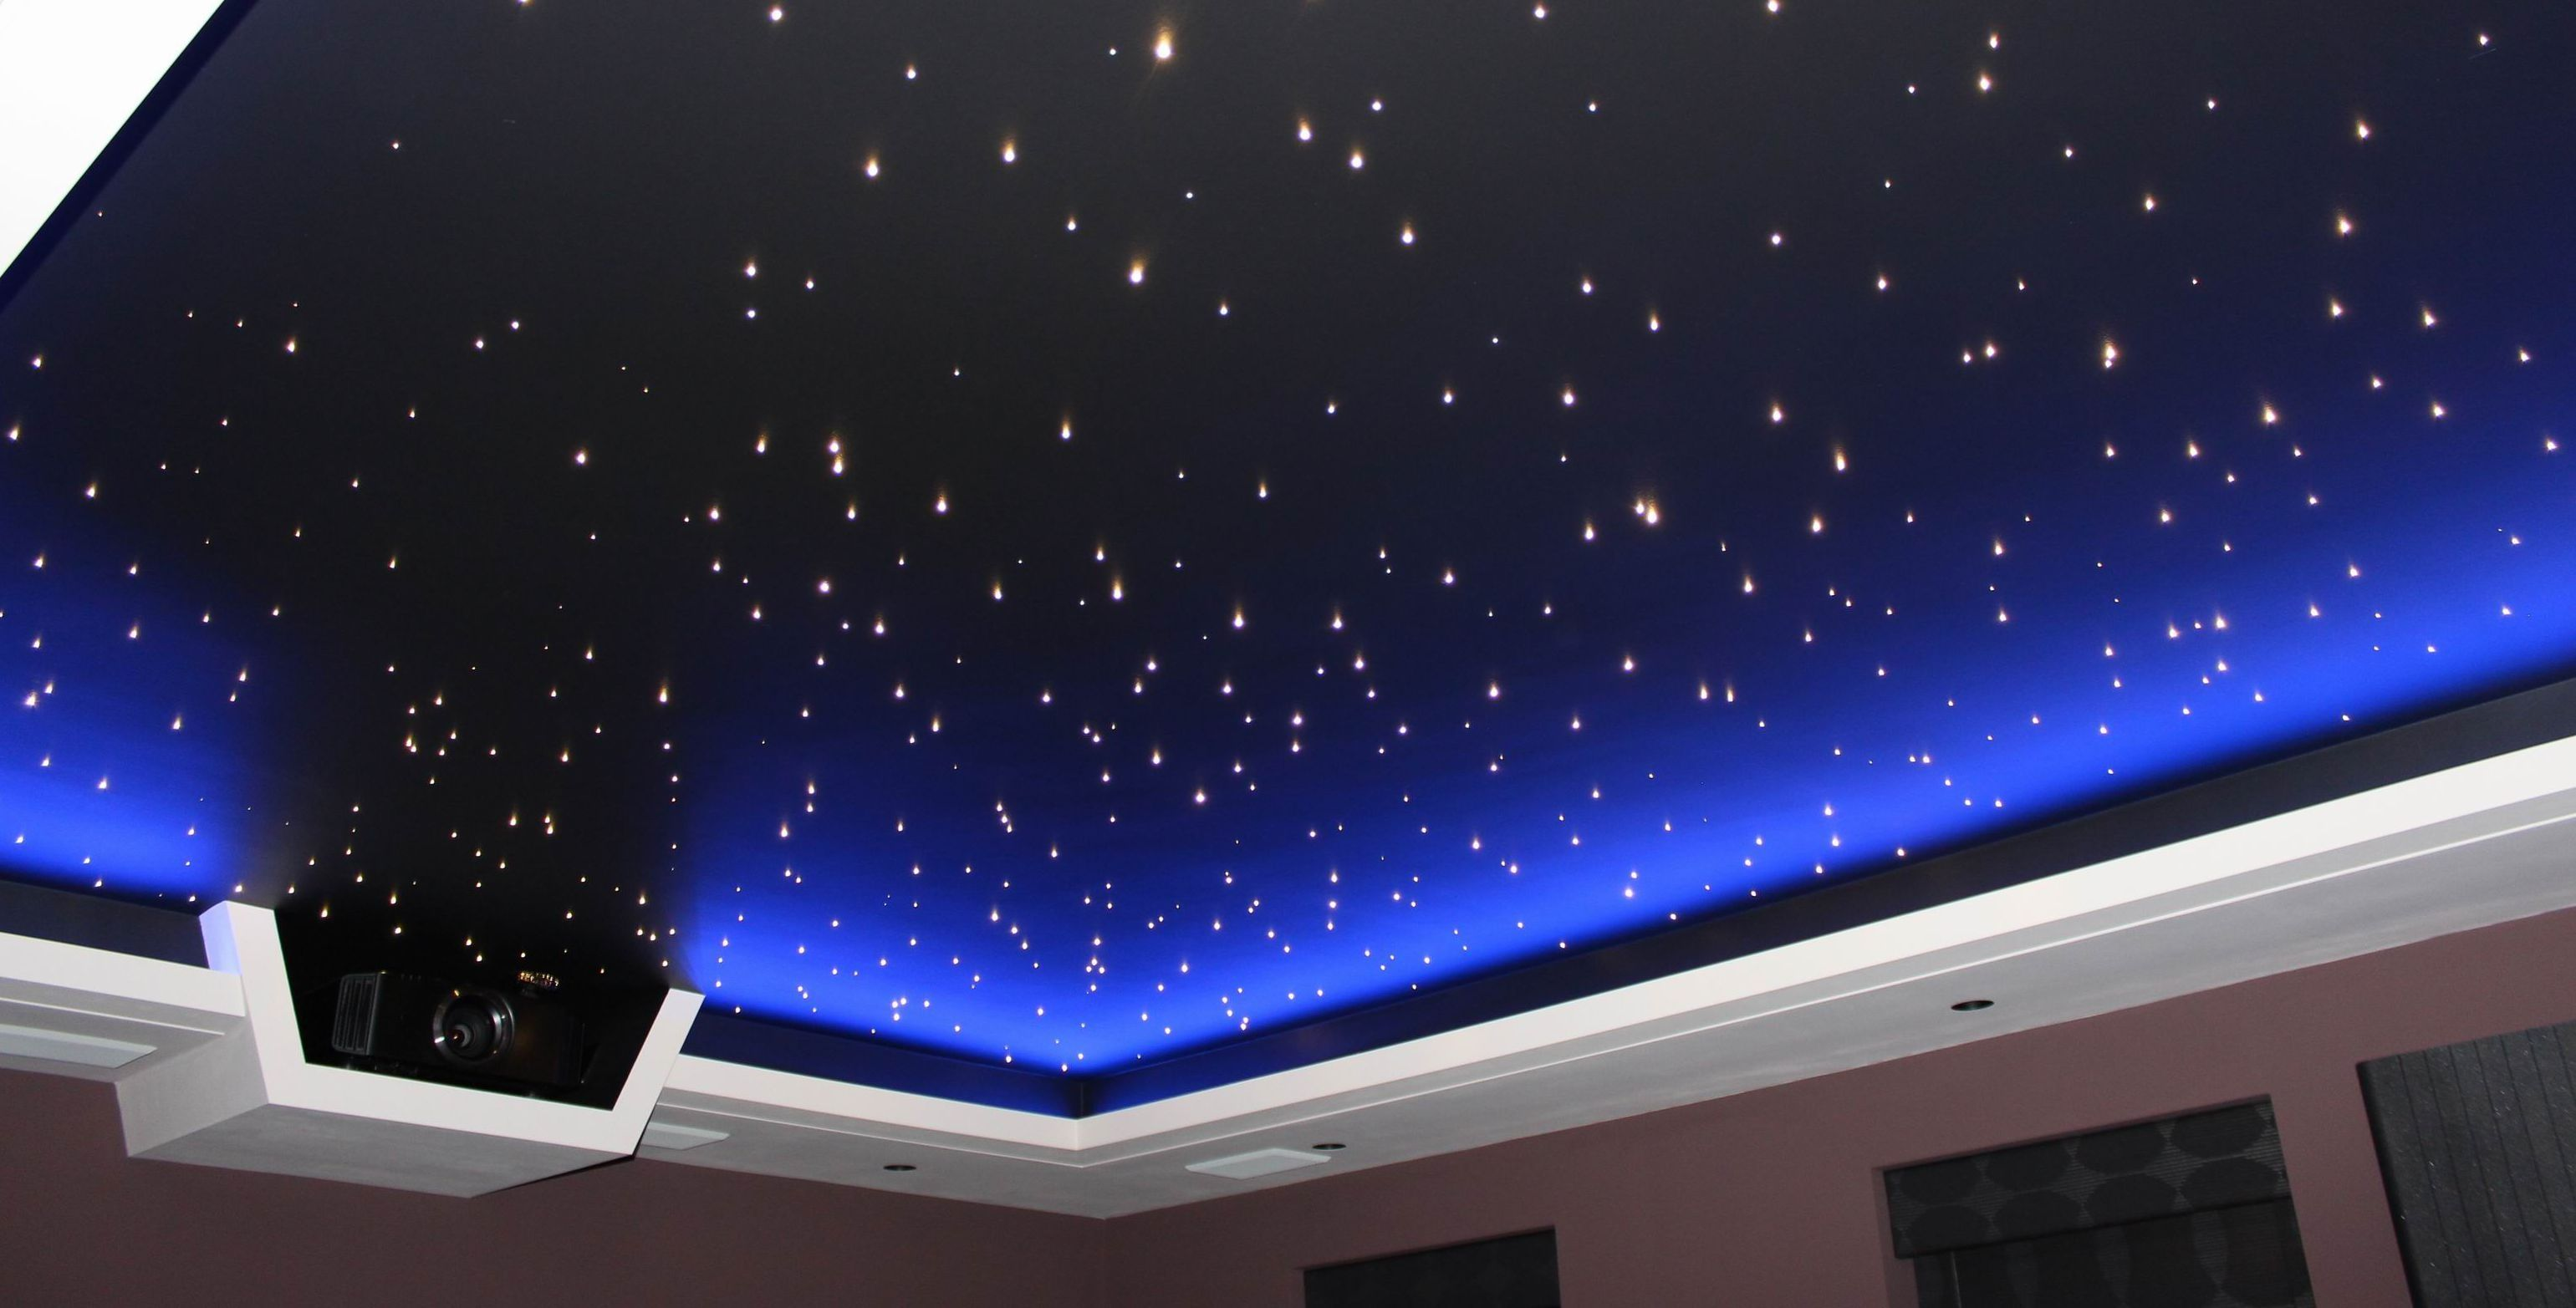 Fiber Optic Star Ceiling Lighting Kit Ceiling Lights Are Fitted On The Ceiling Of A Room To Facilitate L Star Lights On Ceiling Home Cinemas Home Cinema Room